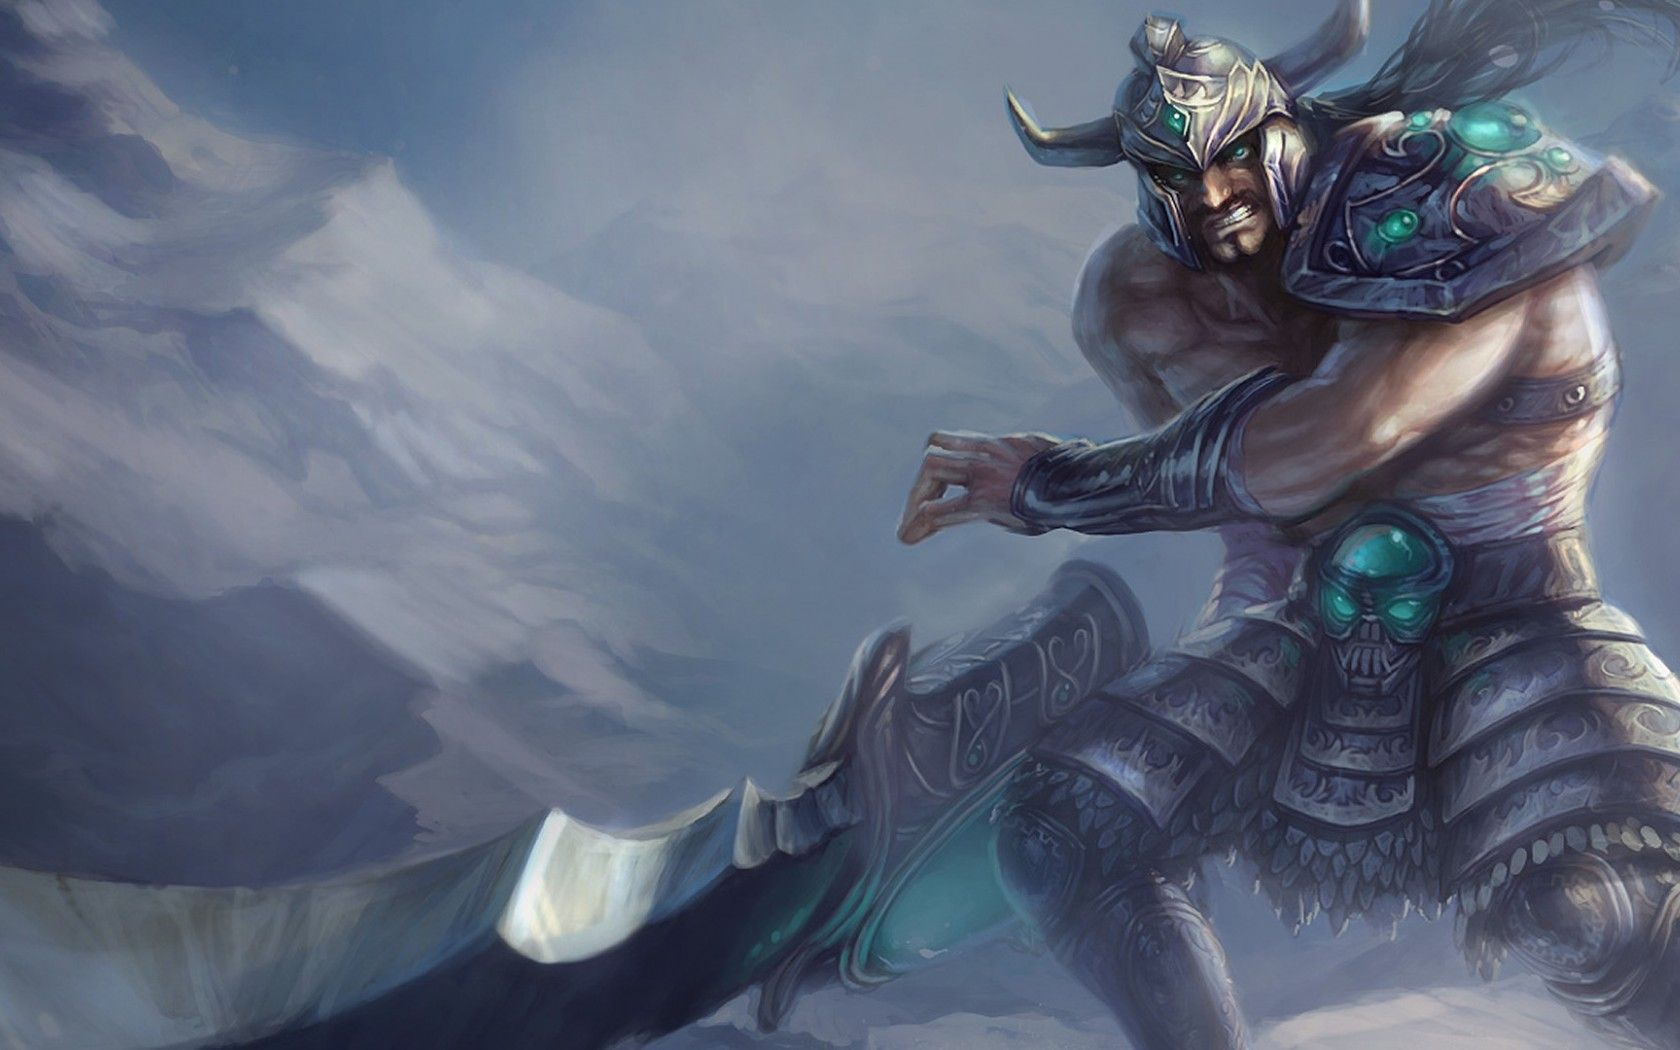 Tryndamere League Of Legends Animated Wallpaper For Desktop And Mobiles 1680x1050 Hd Wallpaper Wallpapers Net